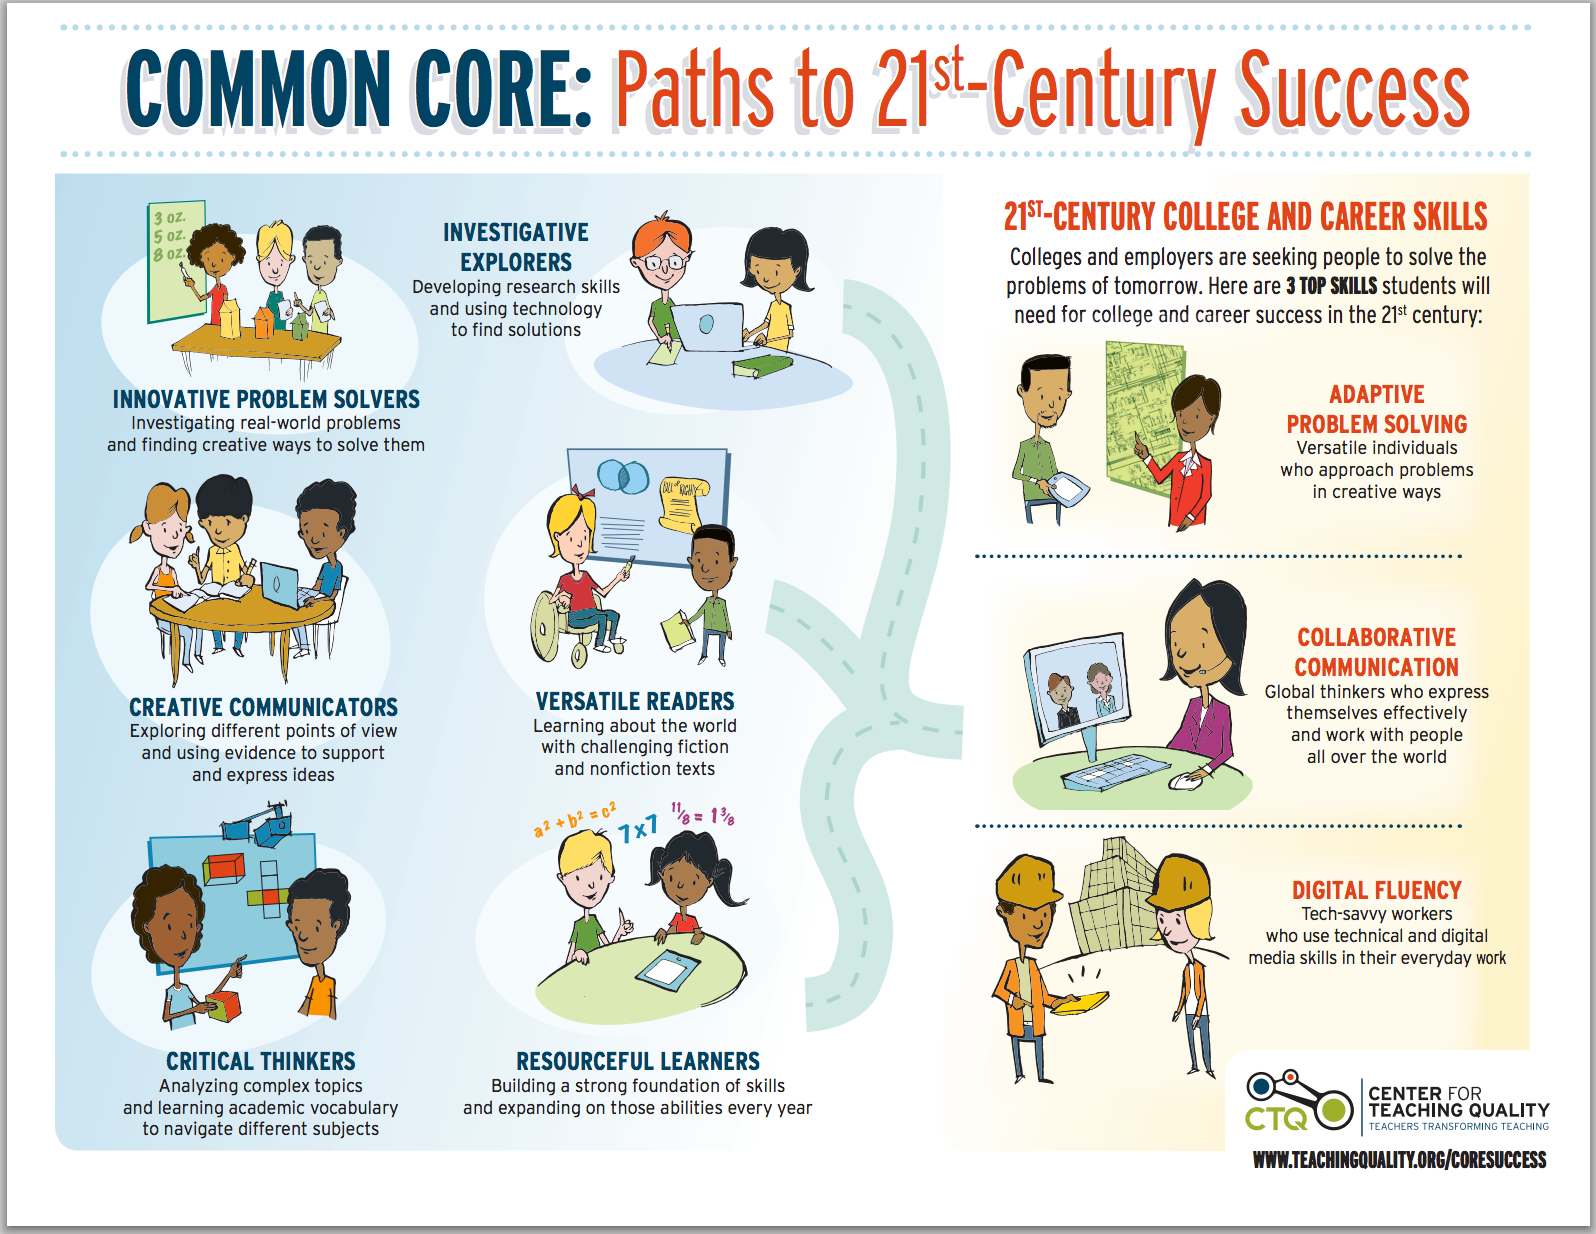 Key Learning Skills That Lead to 21st Century Success